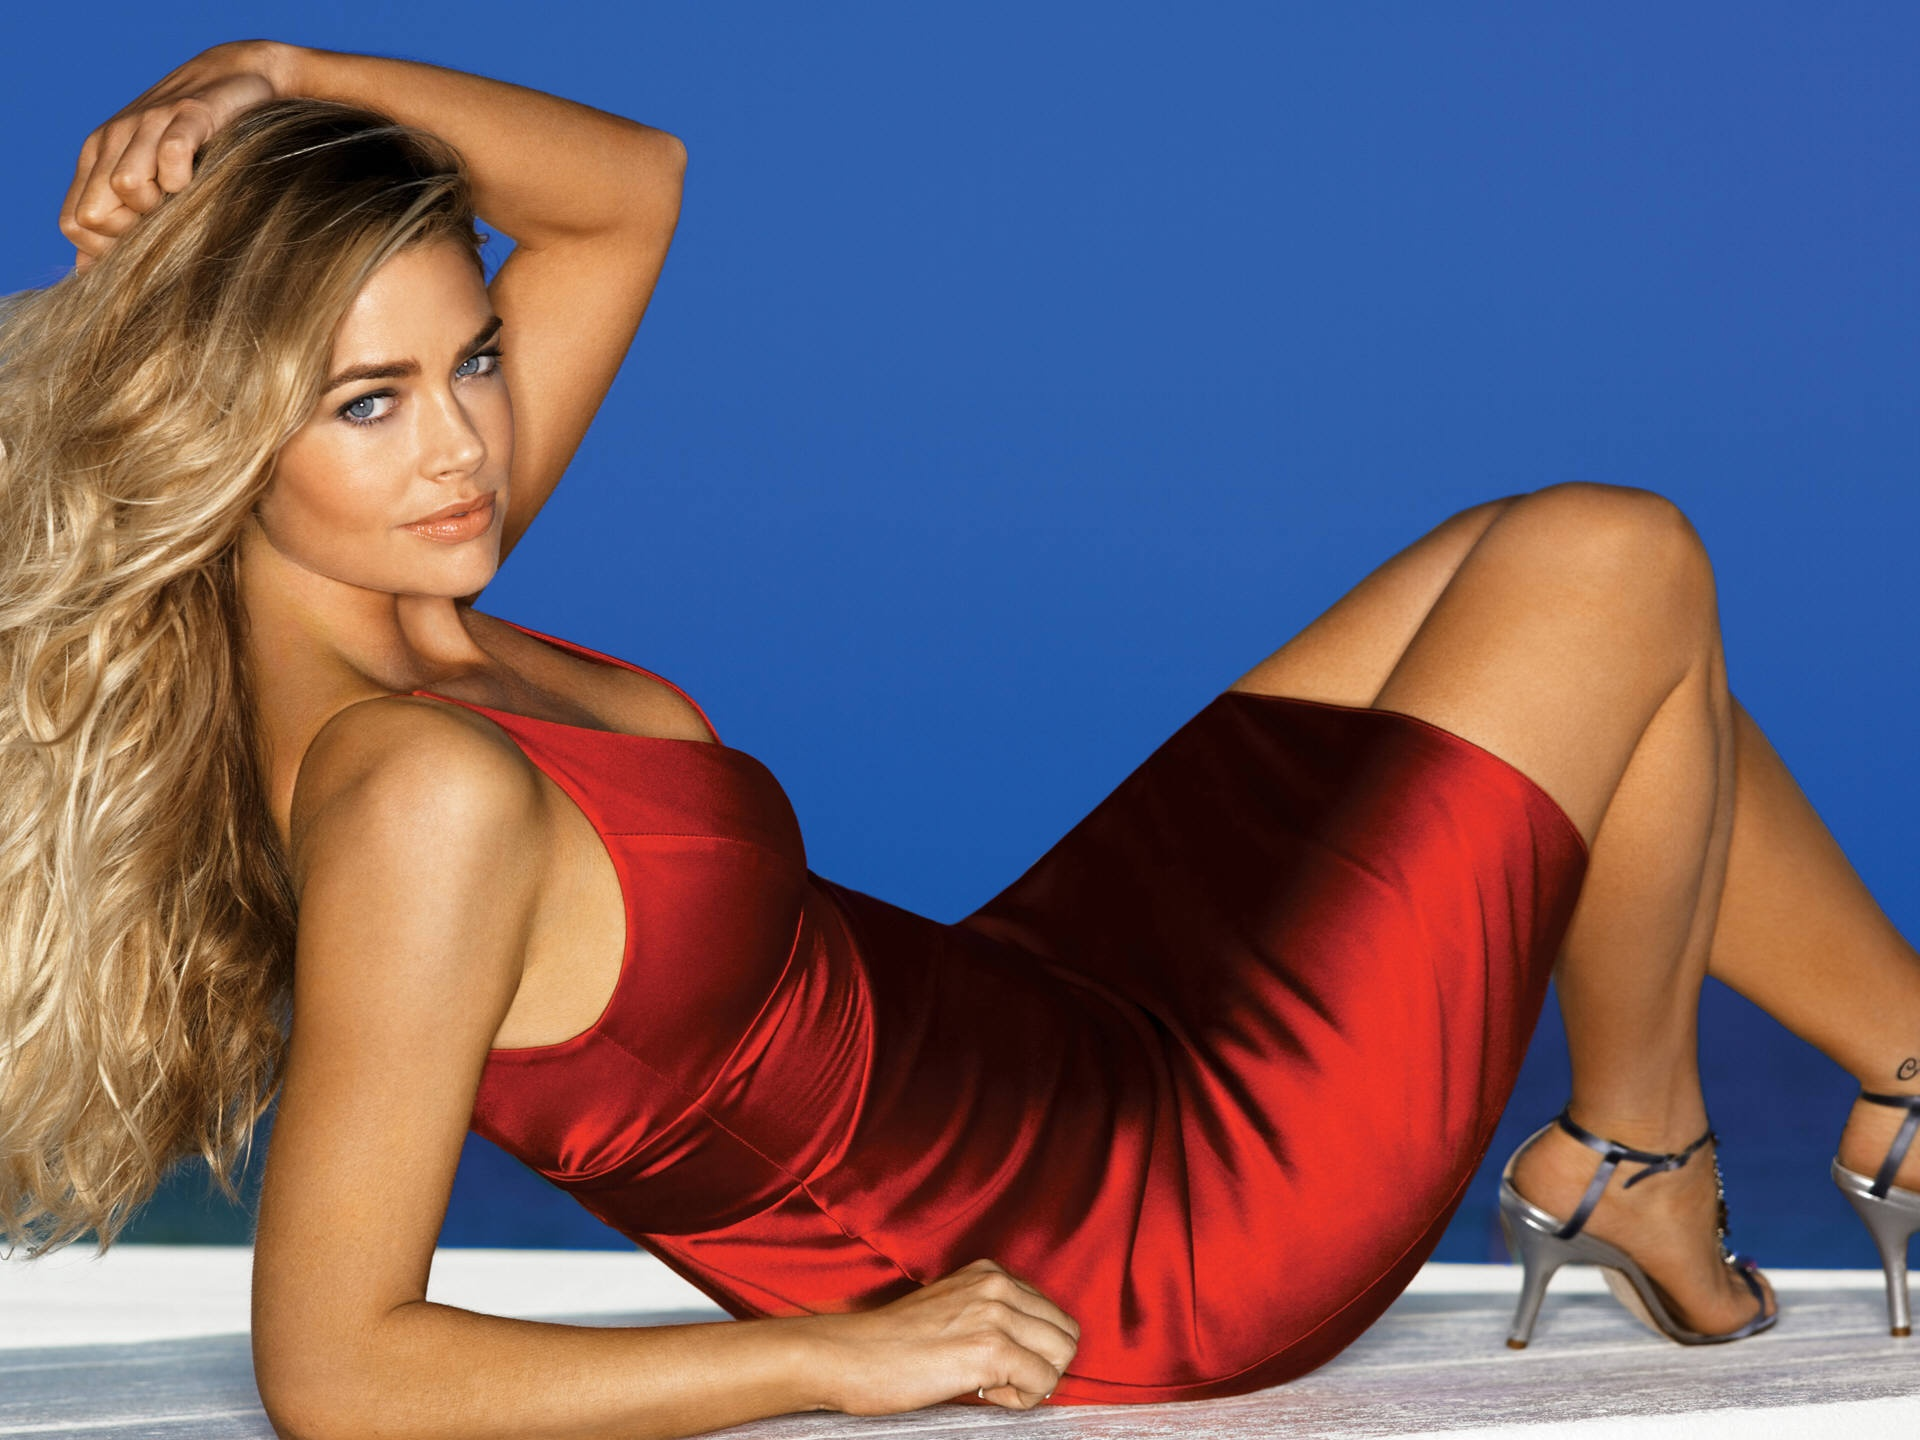 Denise richards red color dress